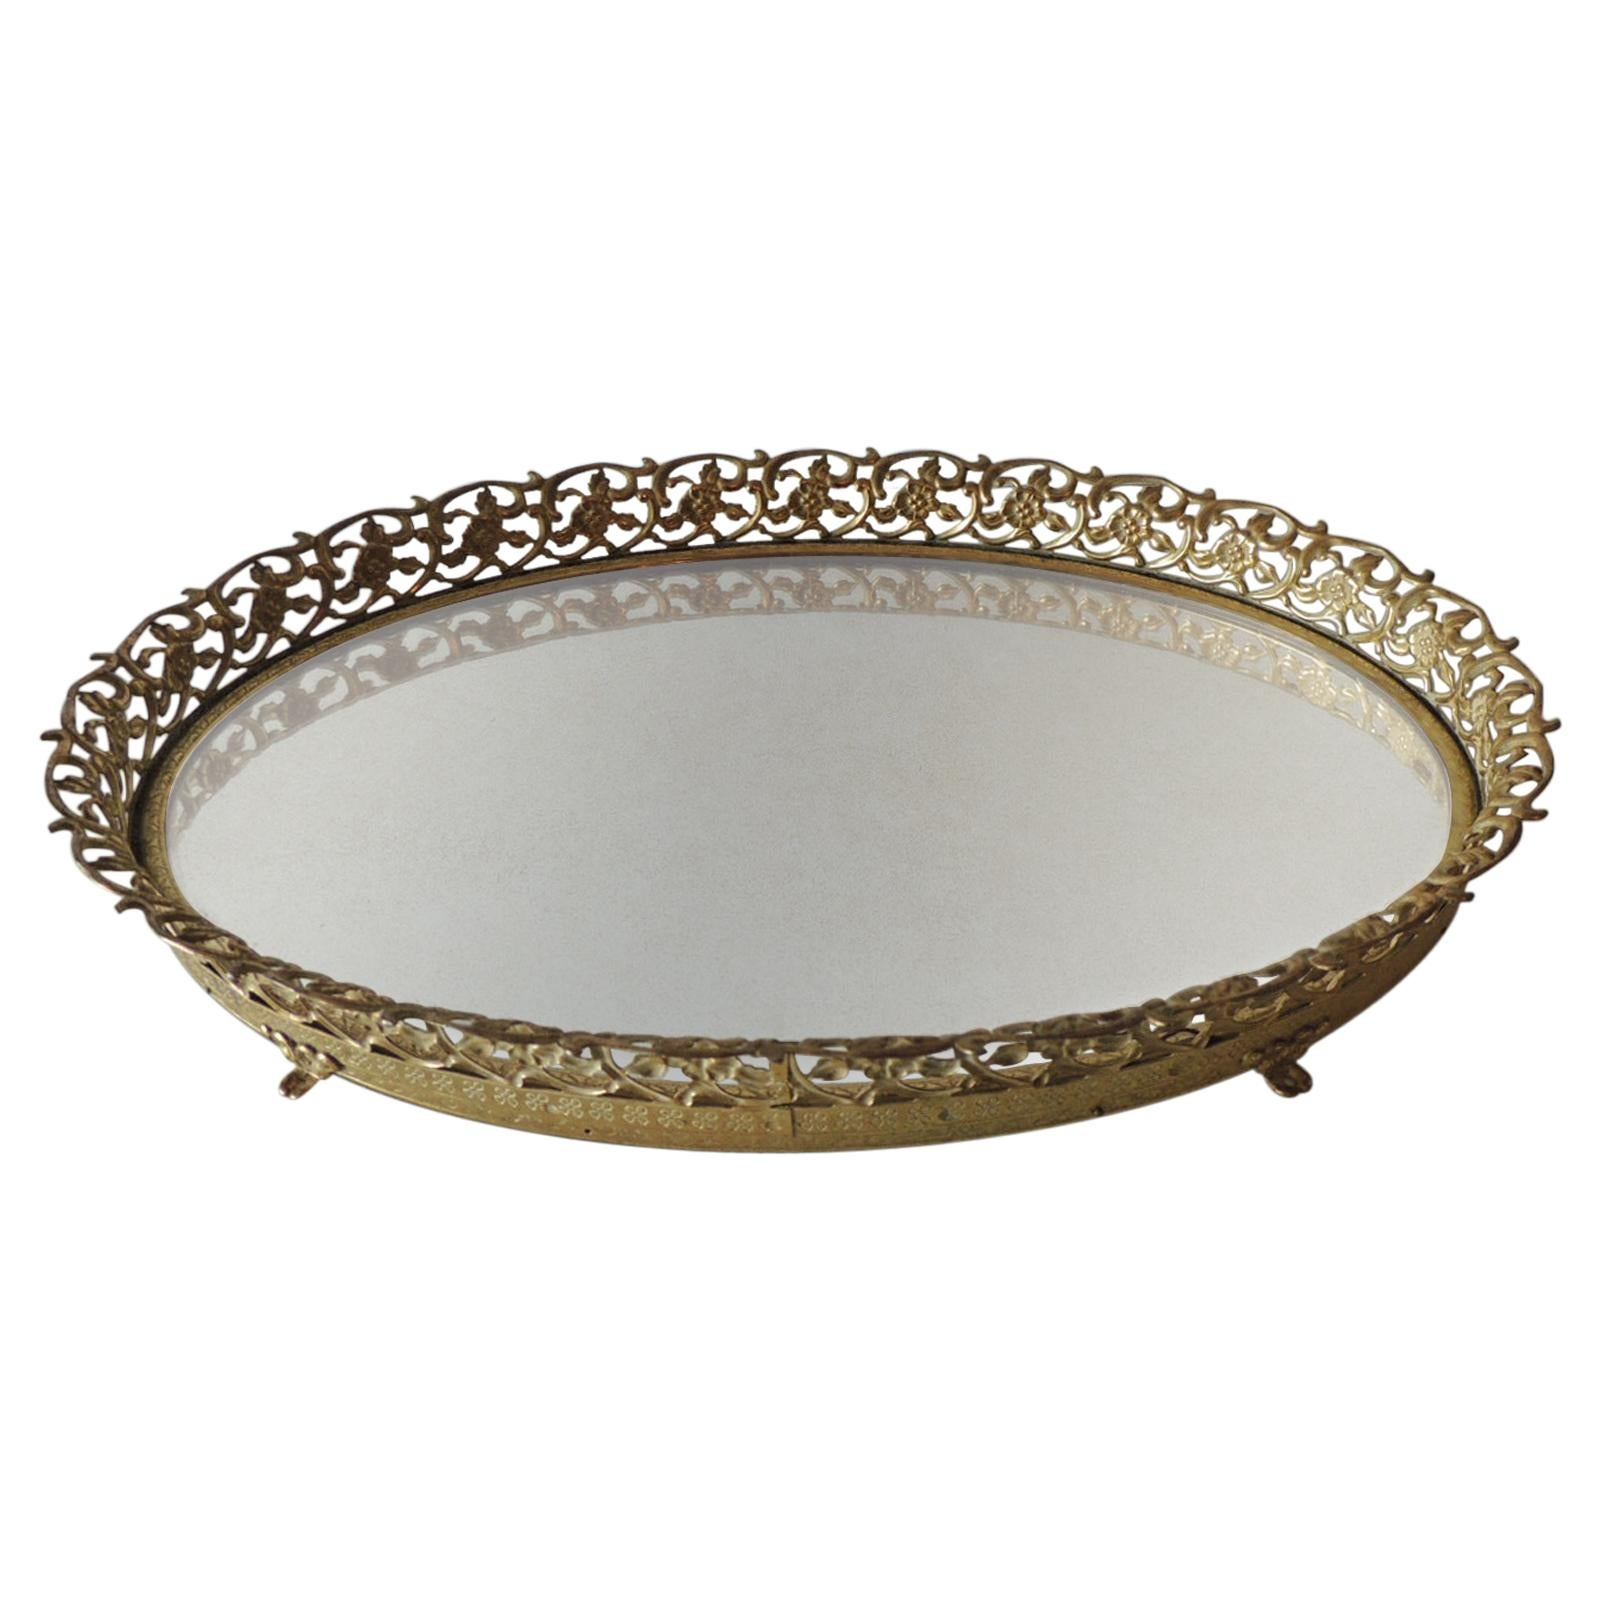 Vintage Gold Tone Filigree Oval Brass Vanity Tray with Mirror